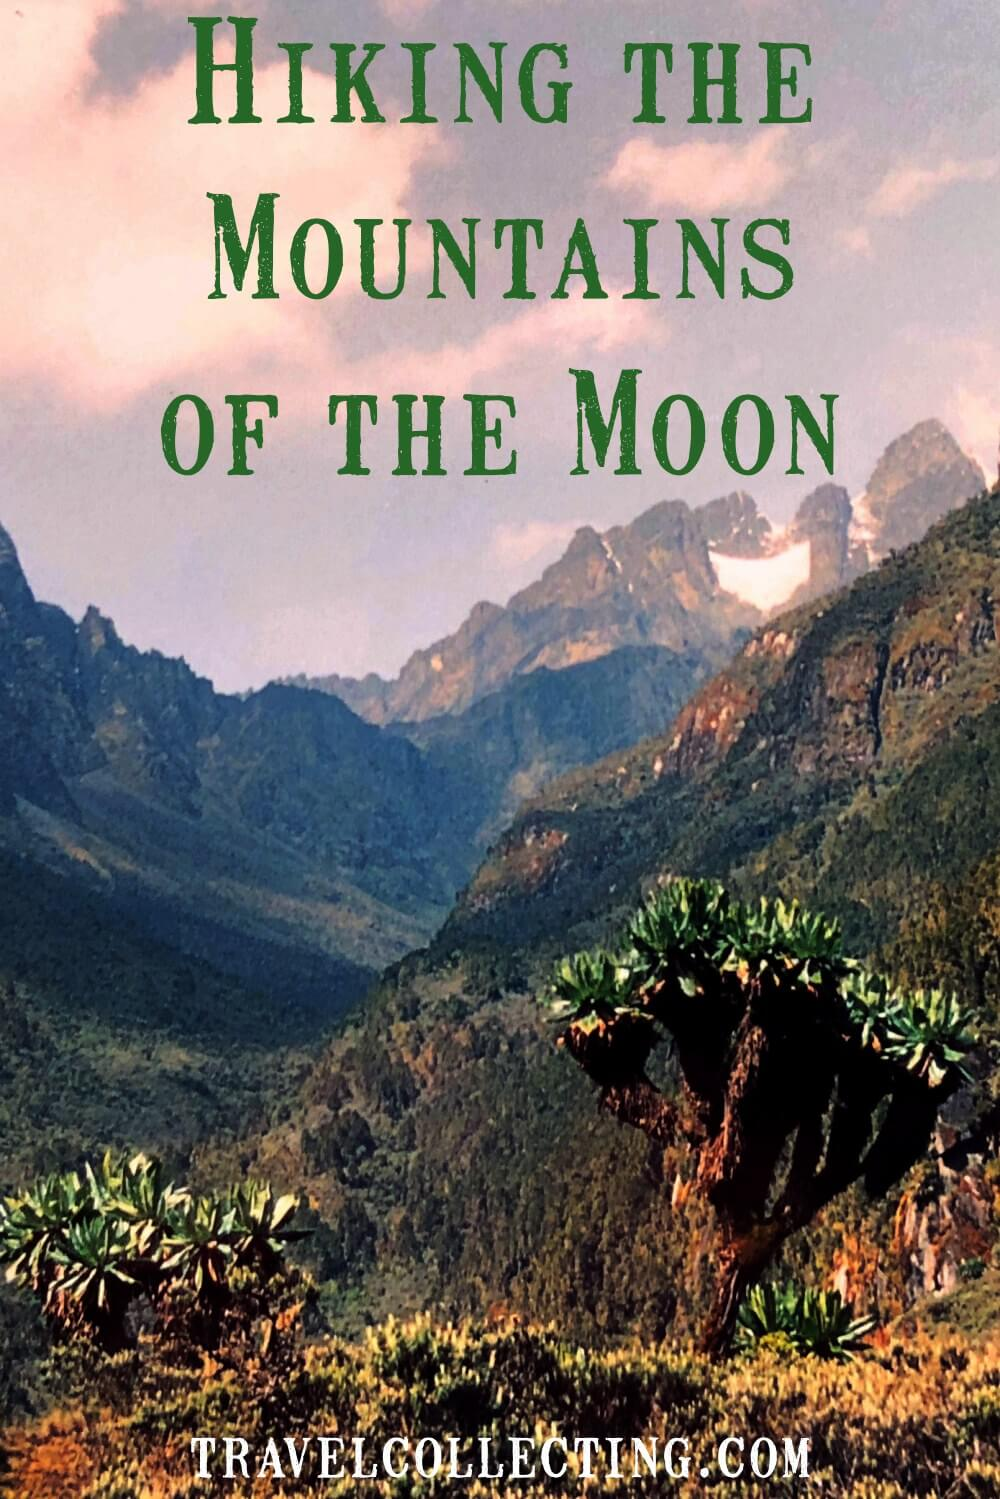 Hiking the Mountains of the moon